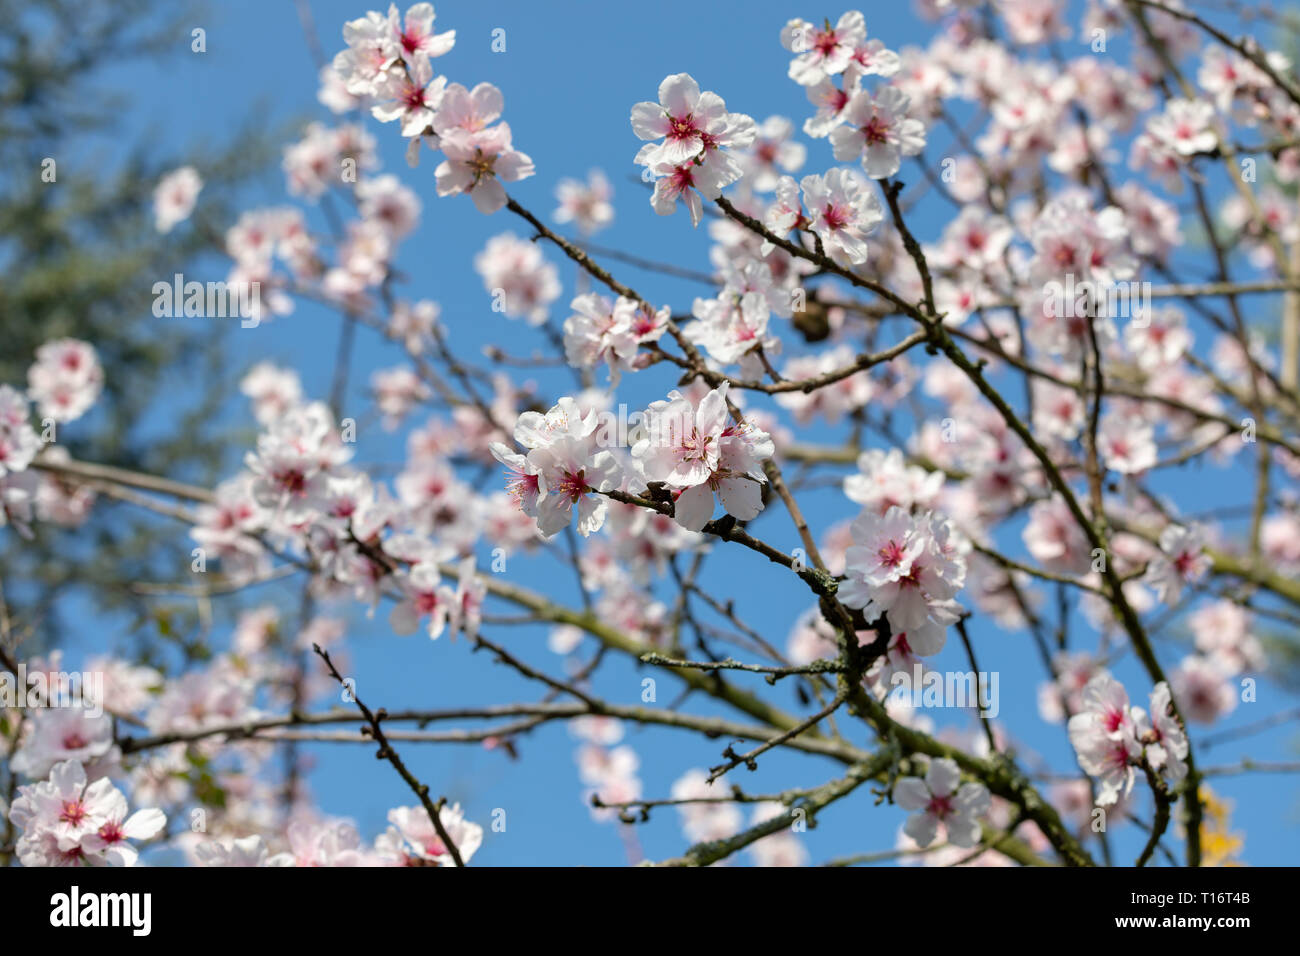 Beautiful White And Pink Japanese Cherry Blossom Trees In Full